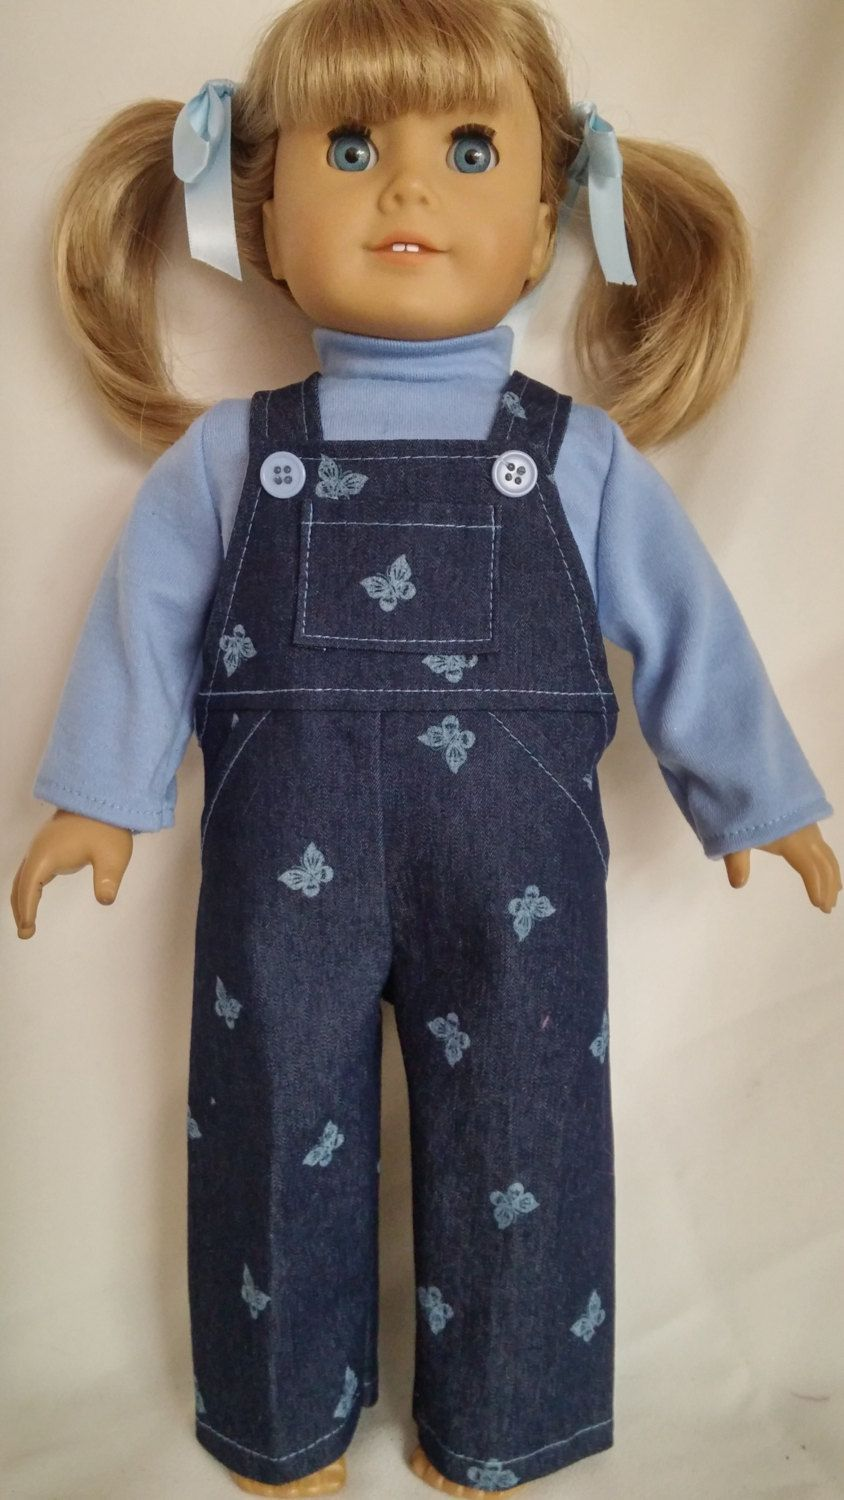 18 inch doll clothes - #606 - Butterfly Bibs and Turtleneck made to fit American Girl Doll by susiestitchit on Etsy